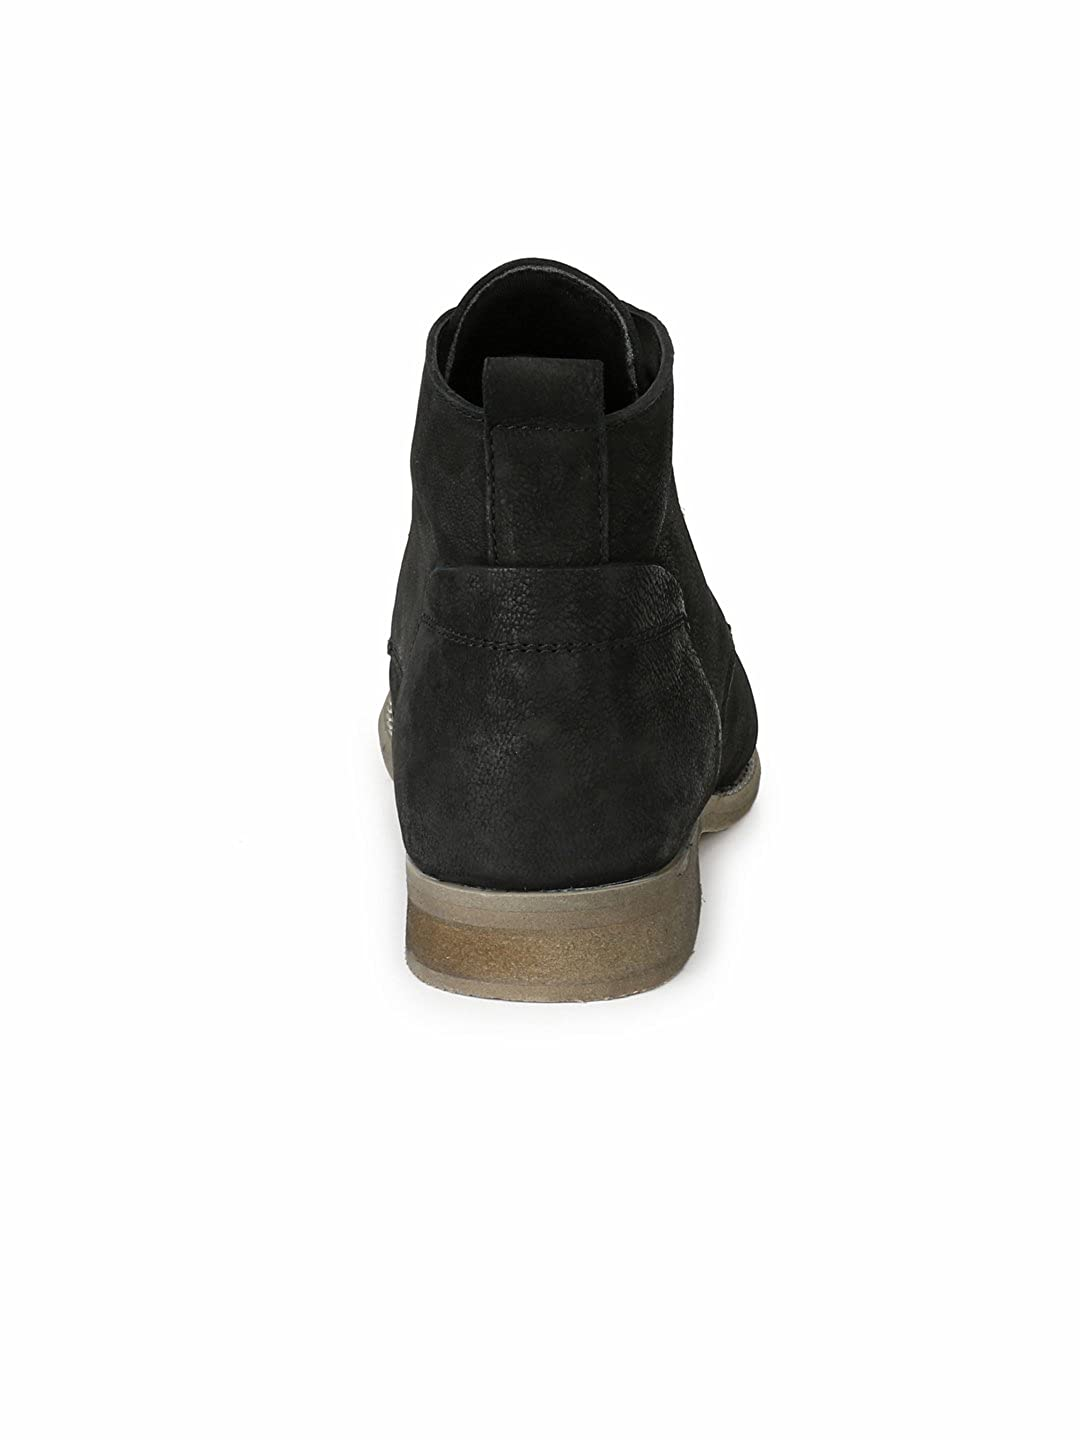 ALBERTO TORRESI Leather Ankle Boots for Women Lace Up Casual Durbey Shoes Combat Boots Booties